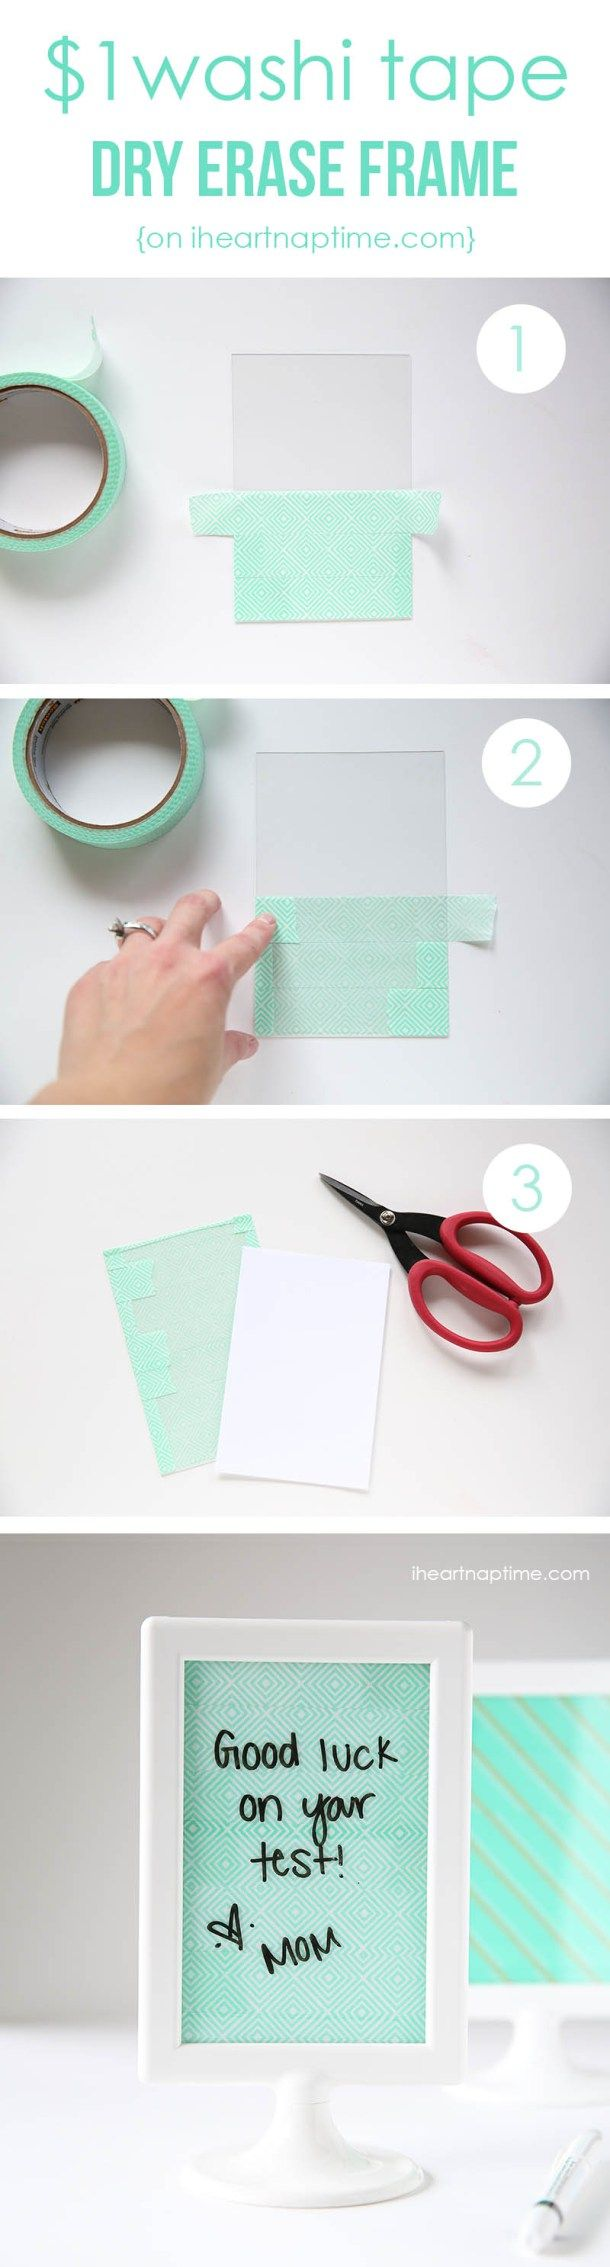 DIY Back to School Projects for Teens and Tweens - ONE DOLLAR Stand up Dry Erase Washi Tape Note Frame Tutorial for your Homework Desk or Locker via i heart naptime